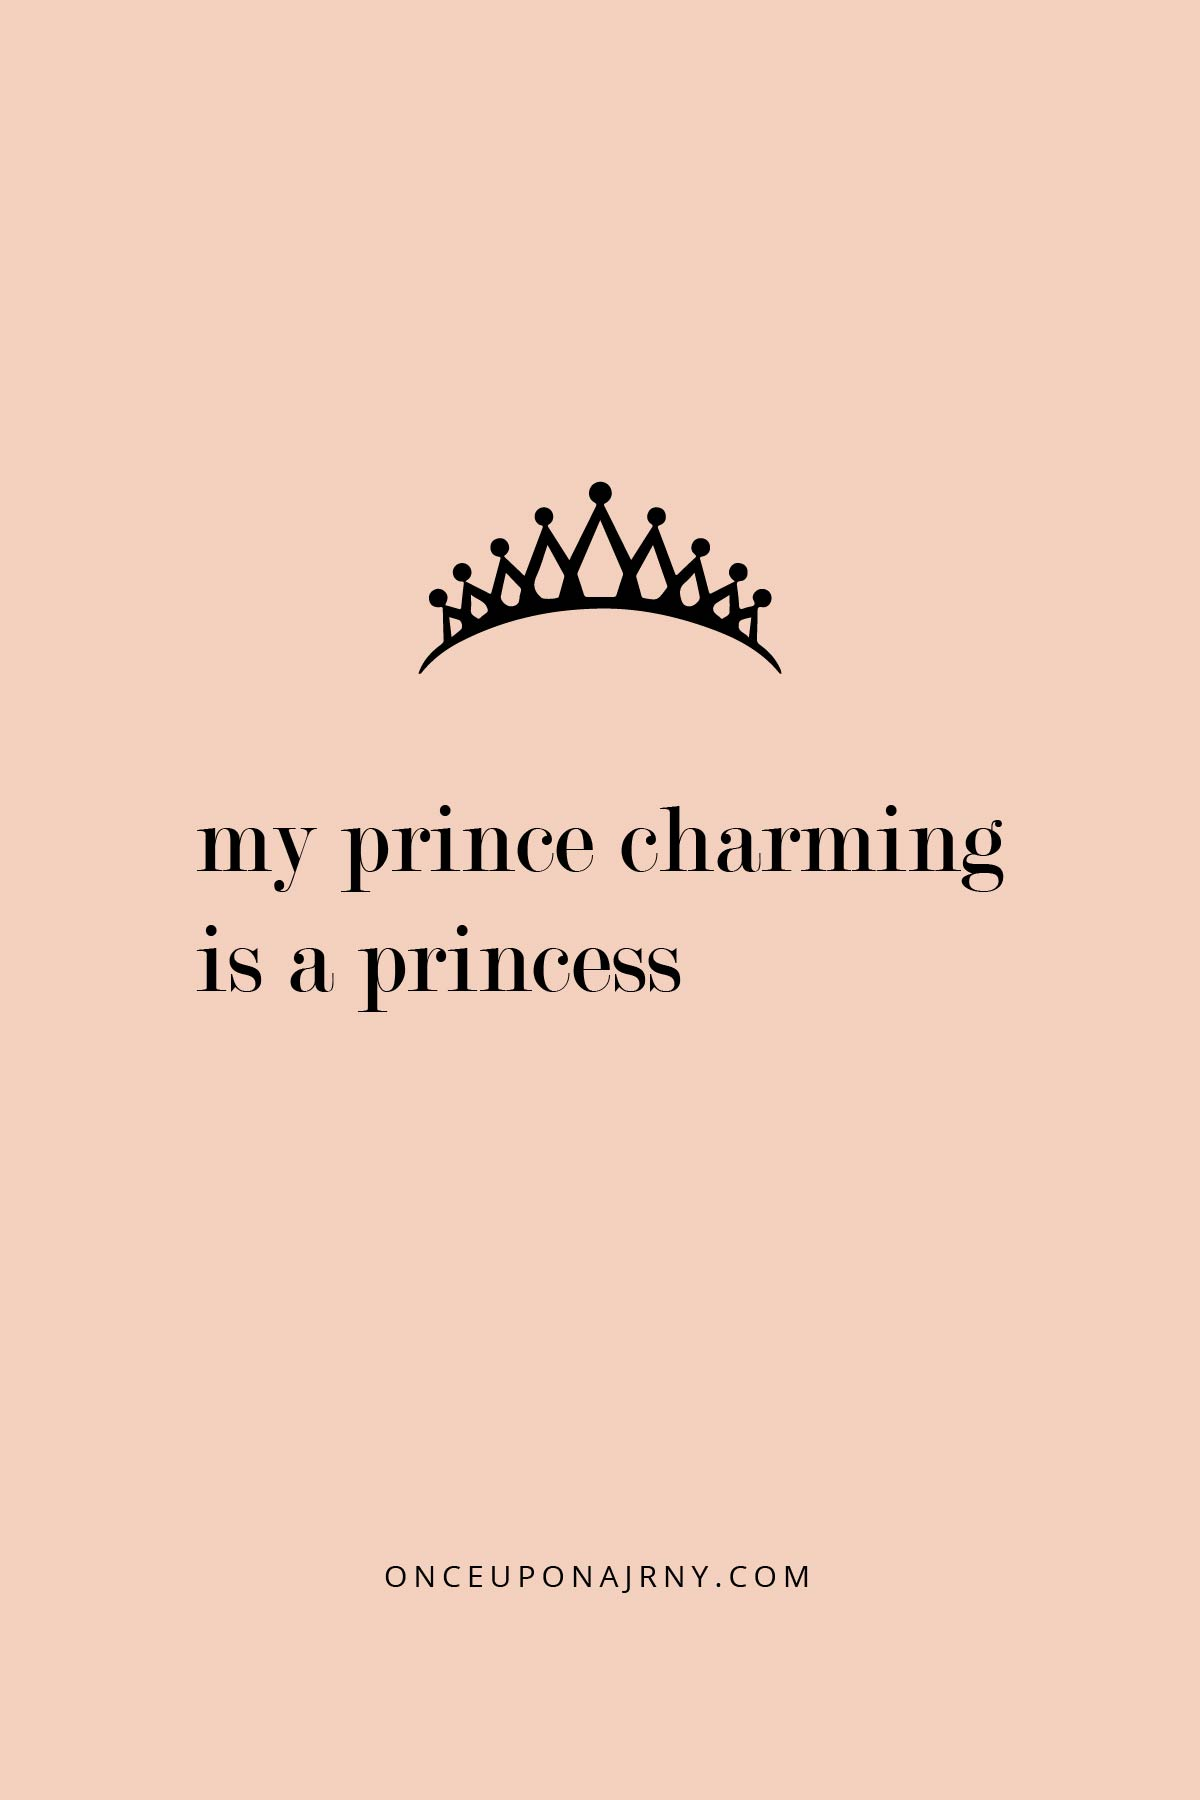 My prince charming is a princess lesbian quotes